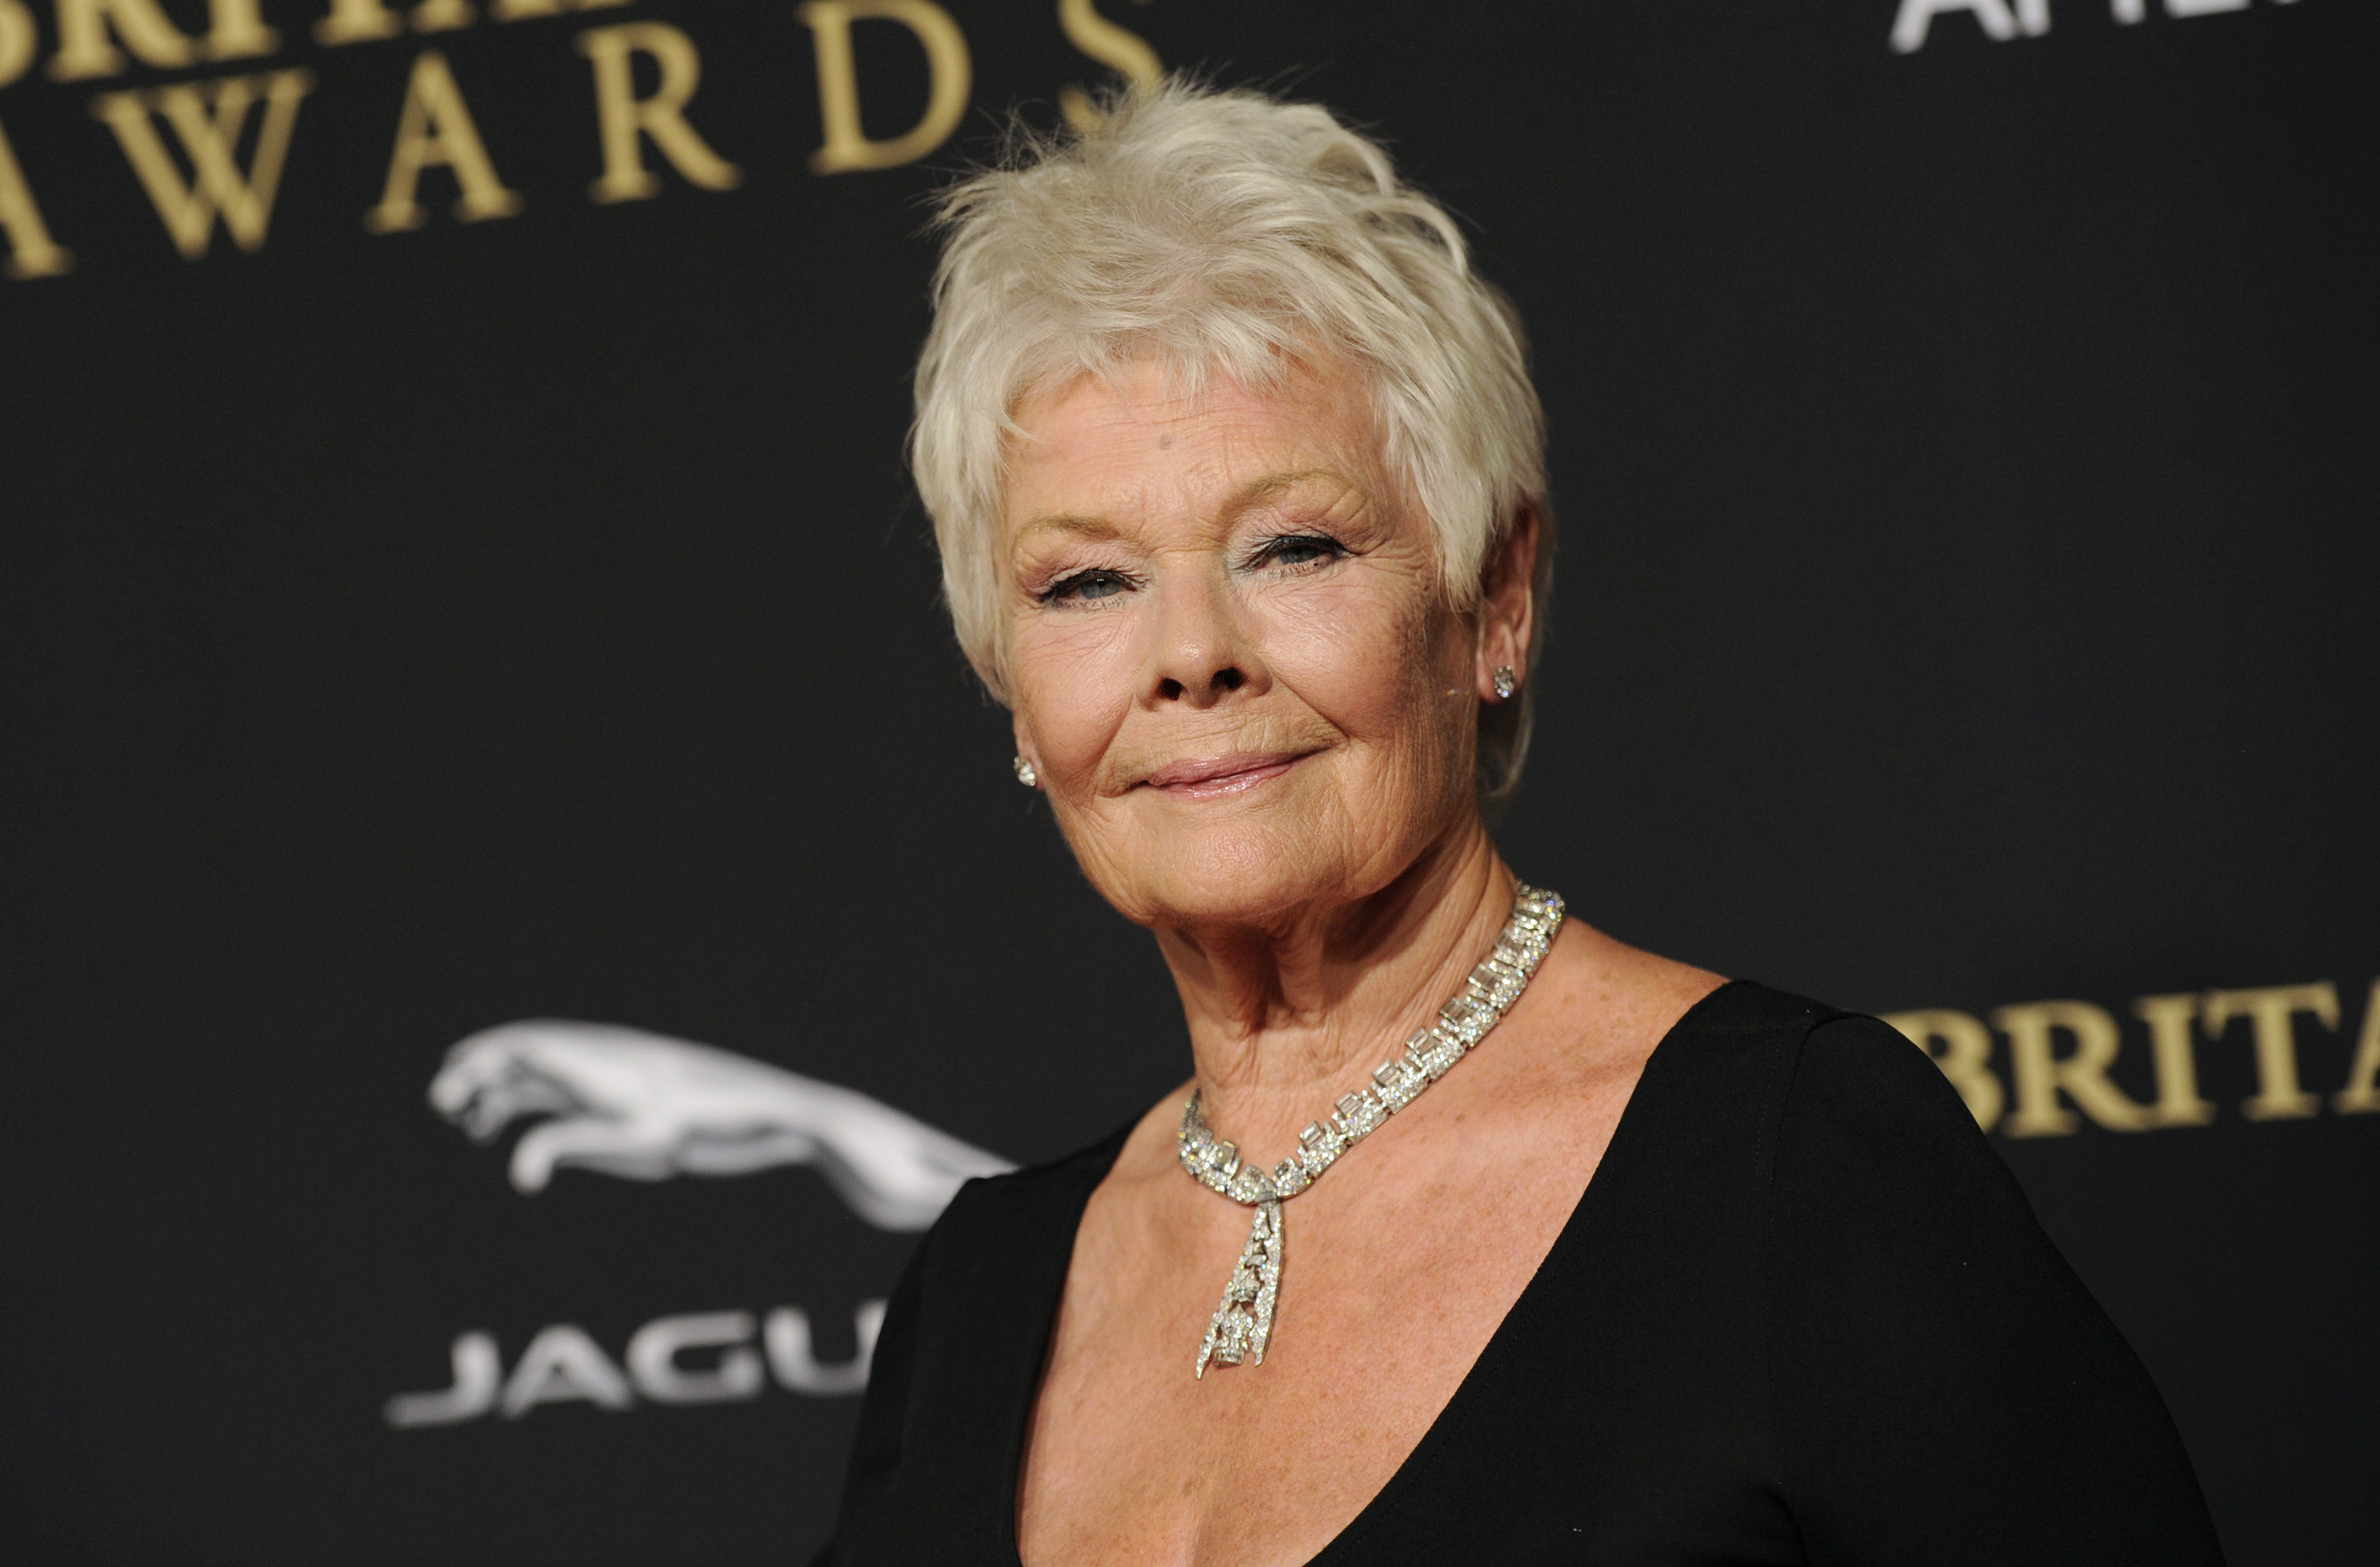 Judi Dench Has A 'Tattoo' On Her Butt